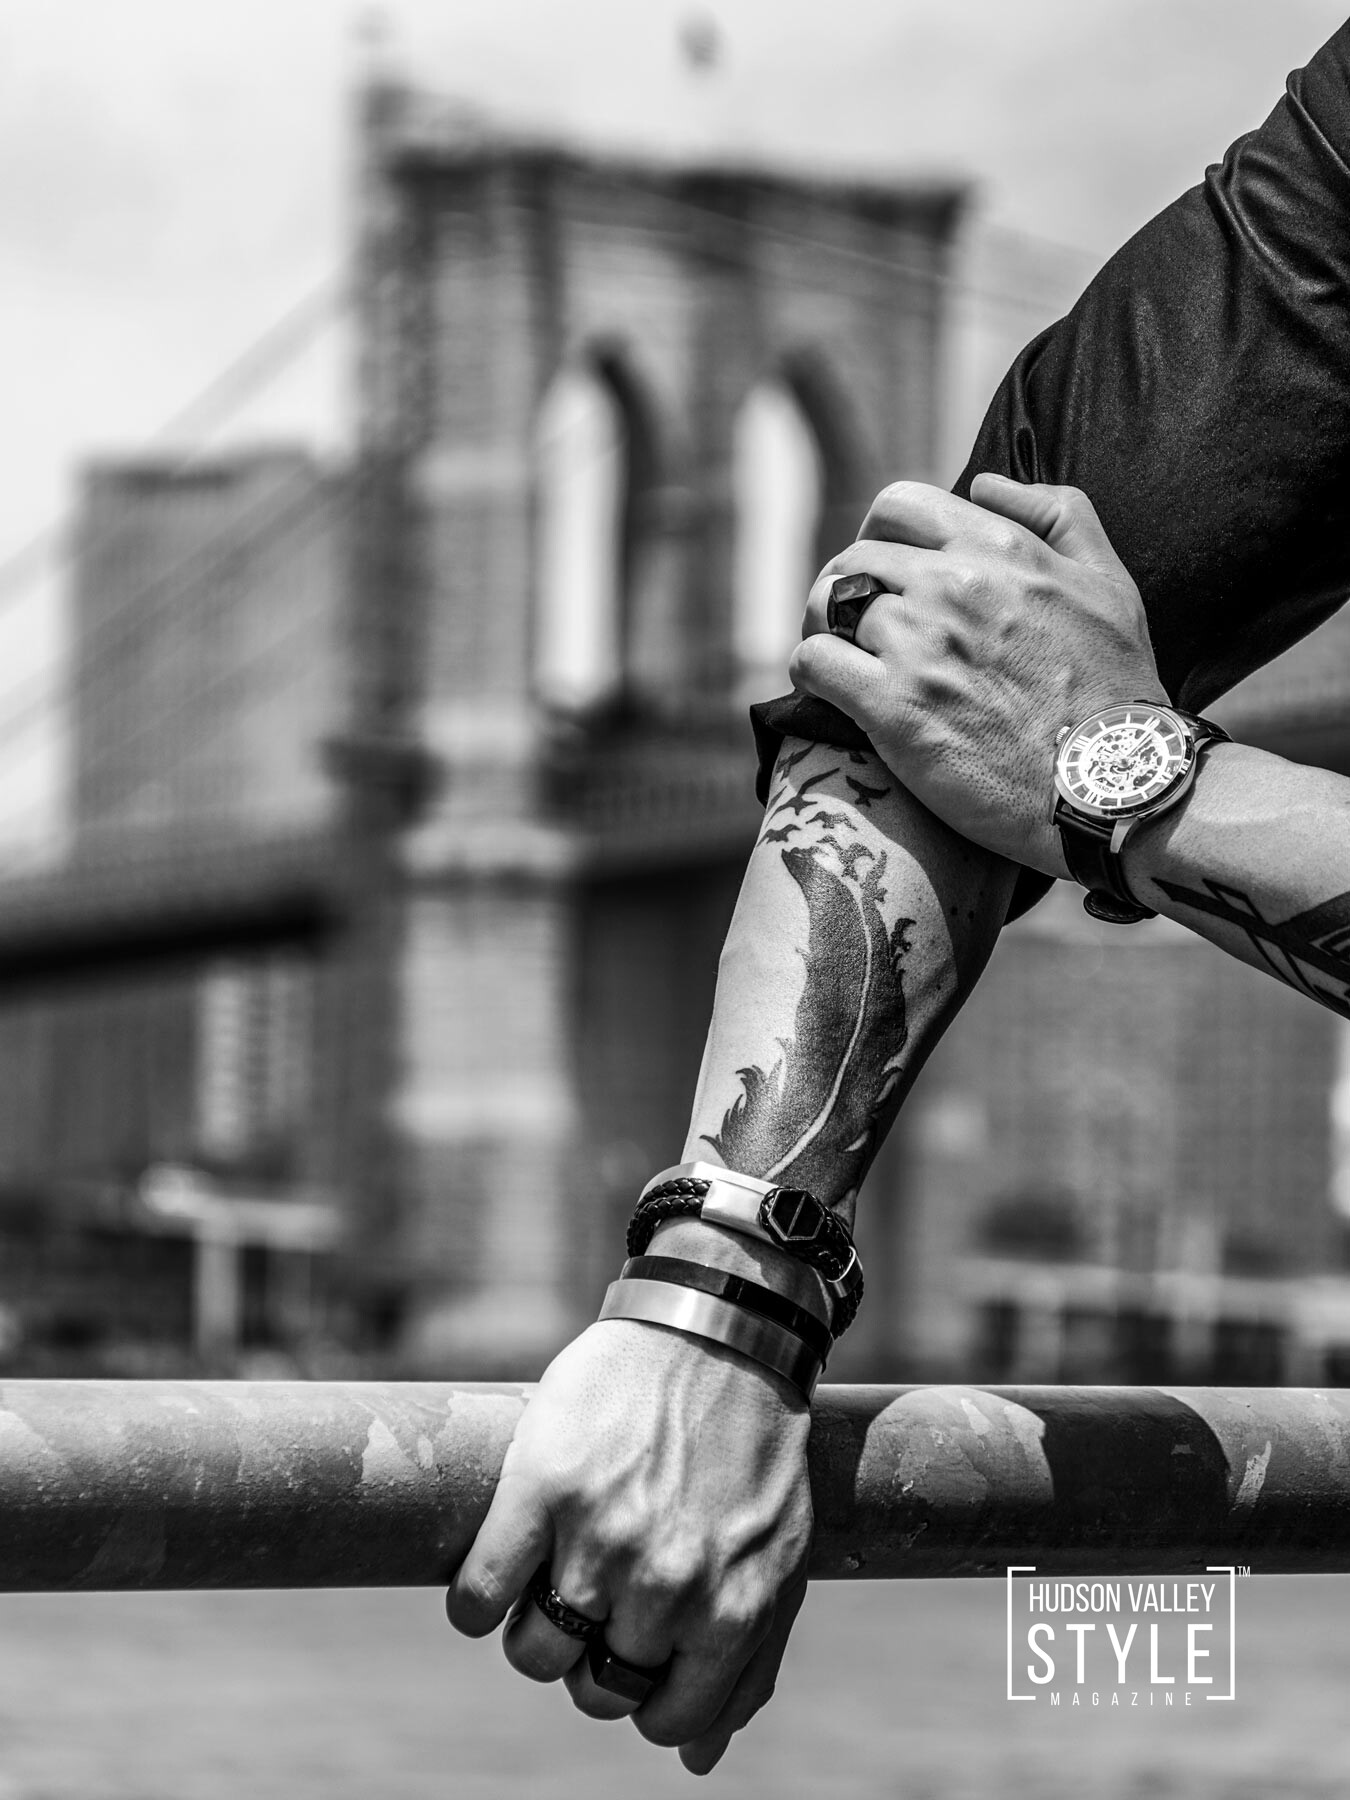 Trendy Mens Fashion Accessories This Holiday Season 2021 - Presented by HARD NEW YORK - Authentic Mens Fashion Accessories